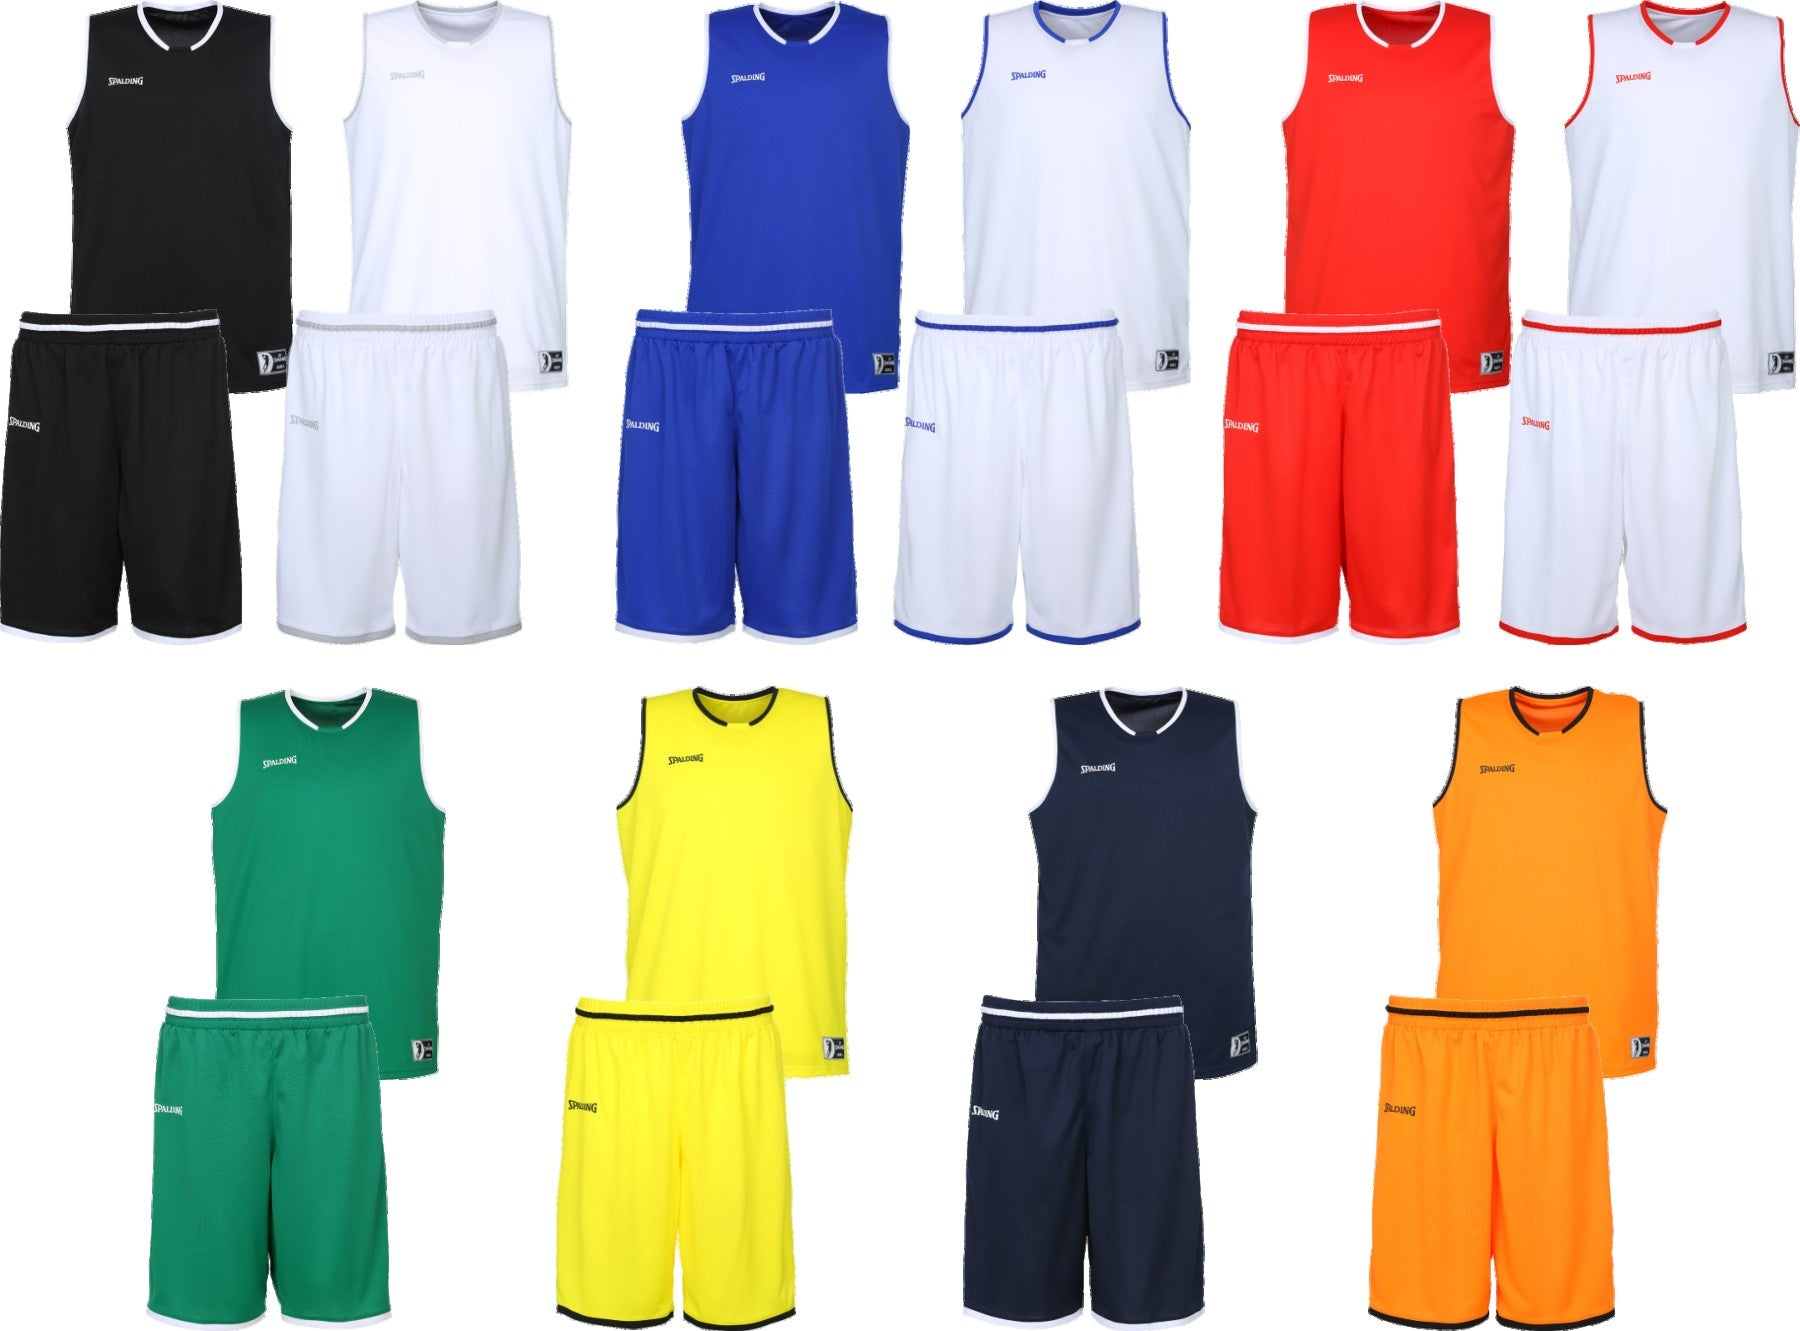 Teamwear - Spalding Kids' Move Kits